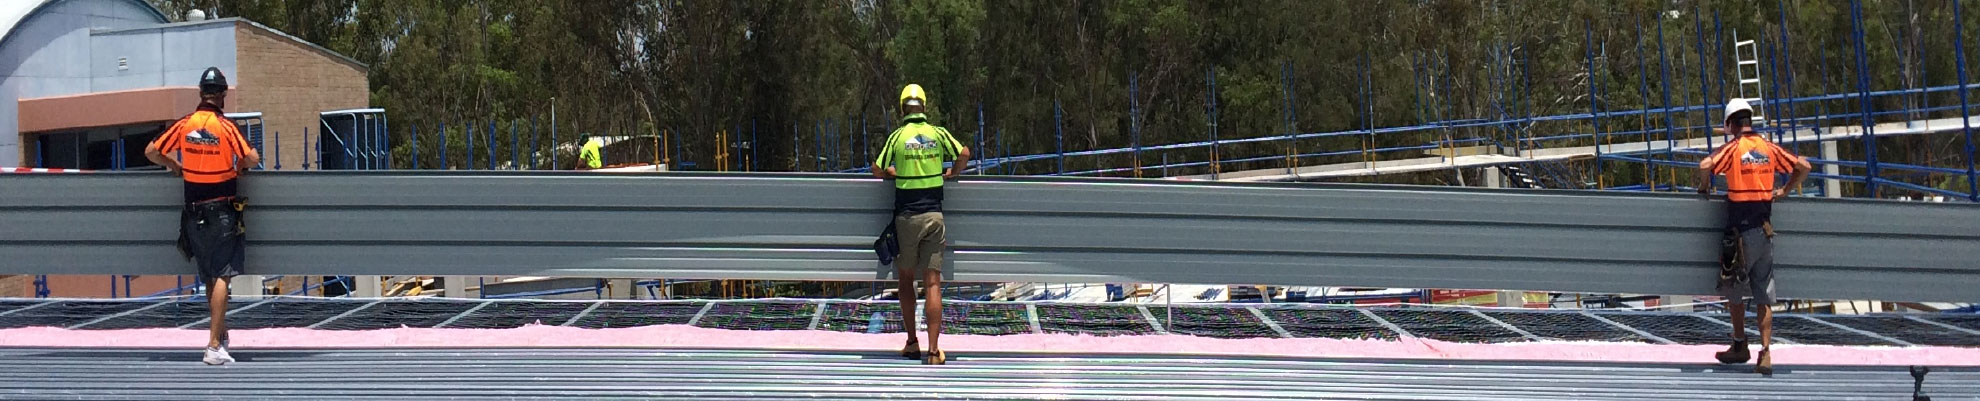 Penrith Sydney based Quikdeck Roofing Contractors offer comprehensive industrial and commercial roofing & cladding services.